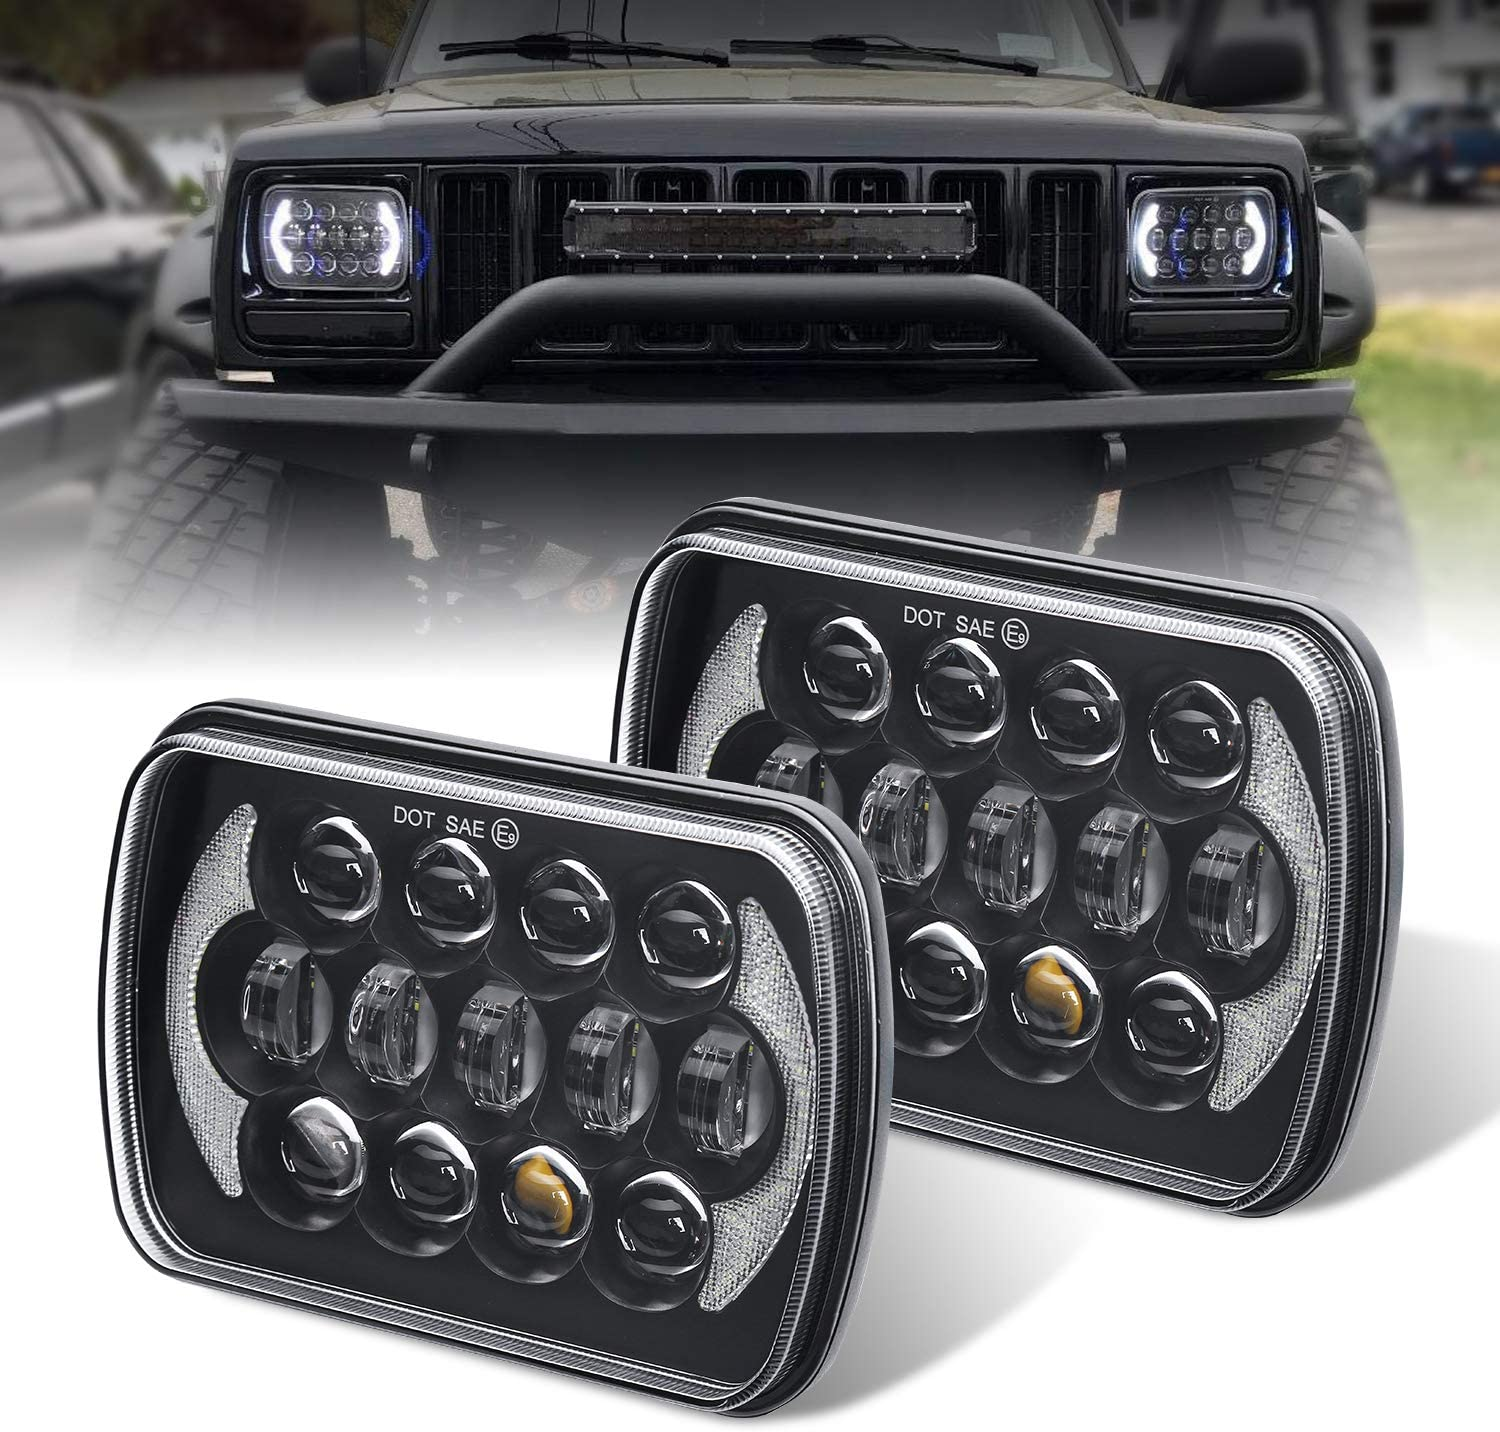 (Pair) 5''x7'' 6''x7'' High Low Beam Led Headlights for Jeep Wrangler YJ Cherokee XJ H6054 H5054 H6054LL 69822 6052 6053 with Angel Eyes DRL (Black 105w Osram Chips) 81okG3WzOCLSL1500_